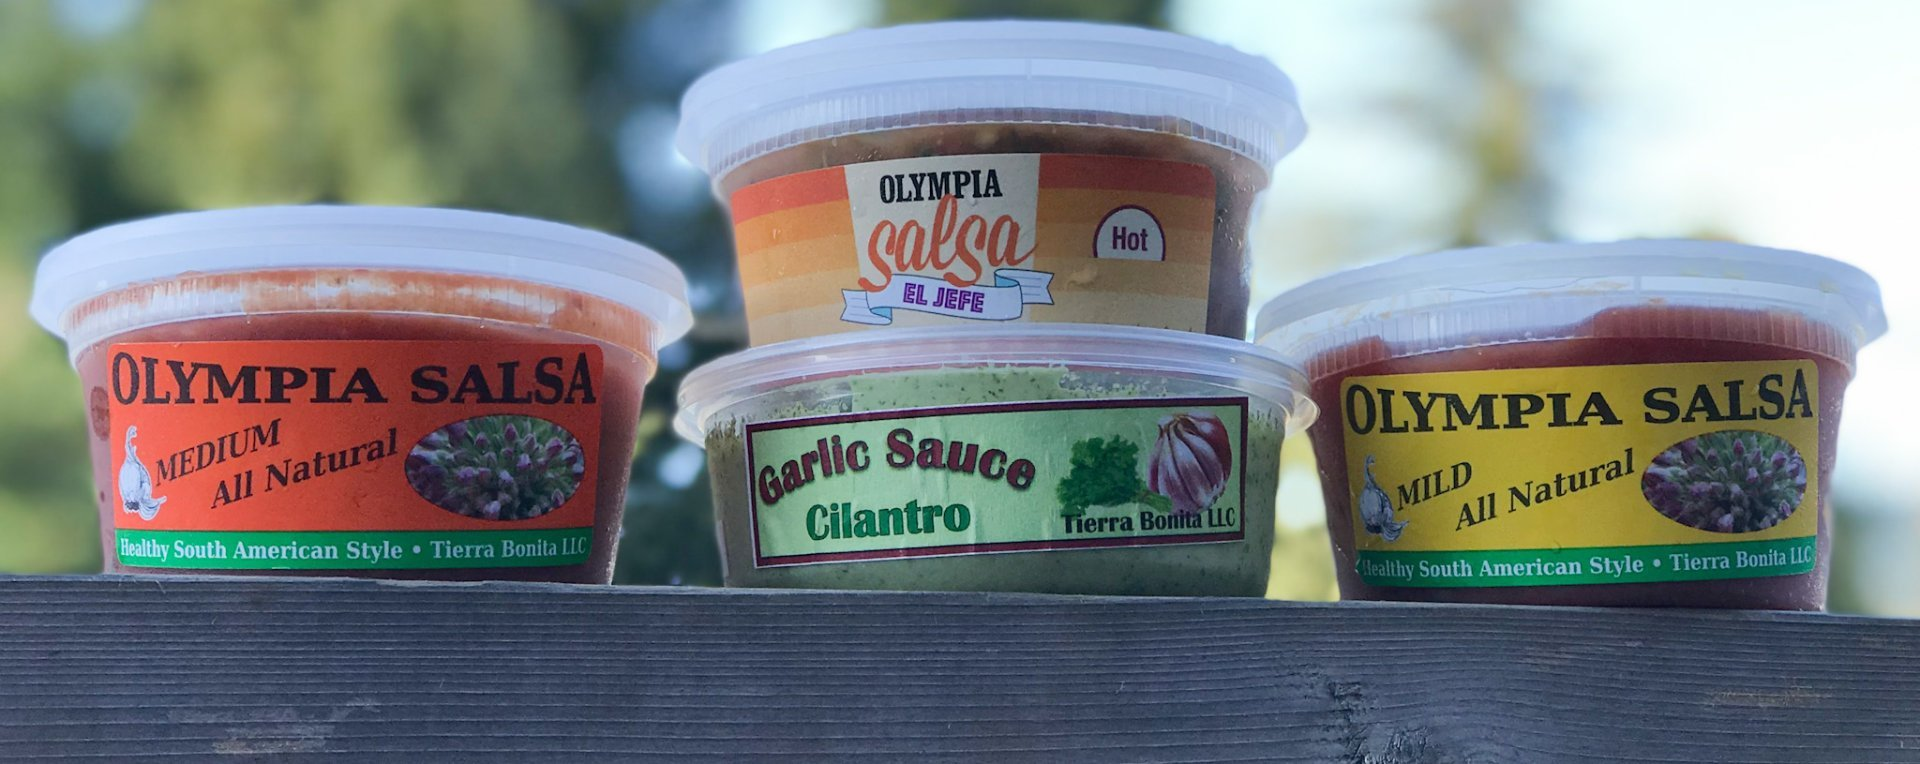 OlySalsa-all-products-hero